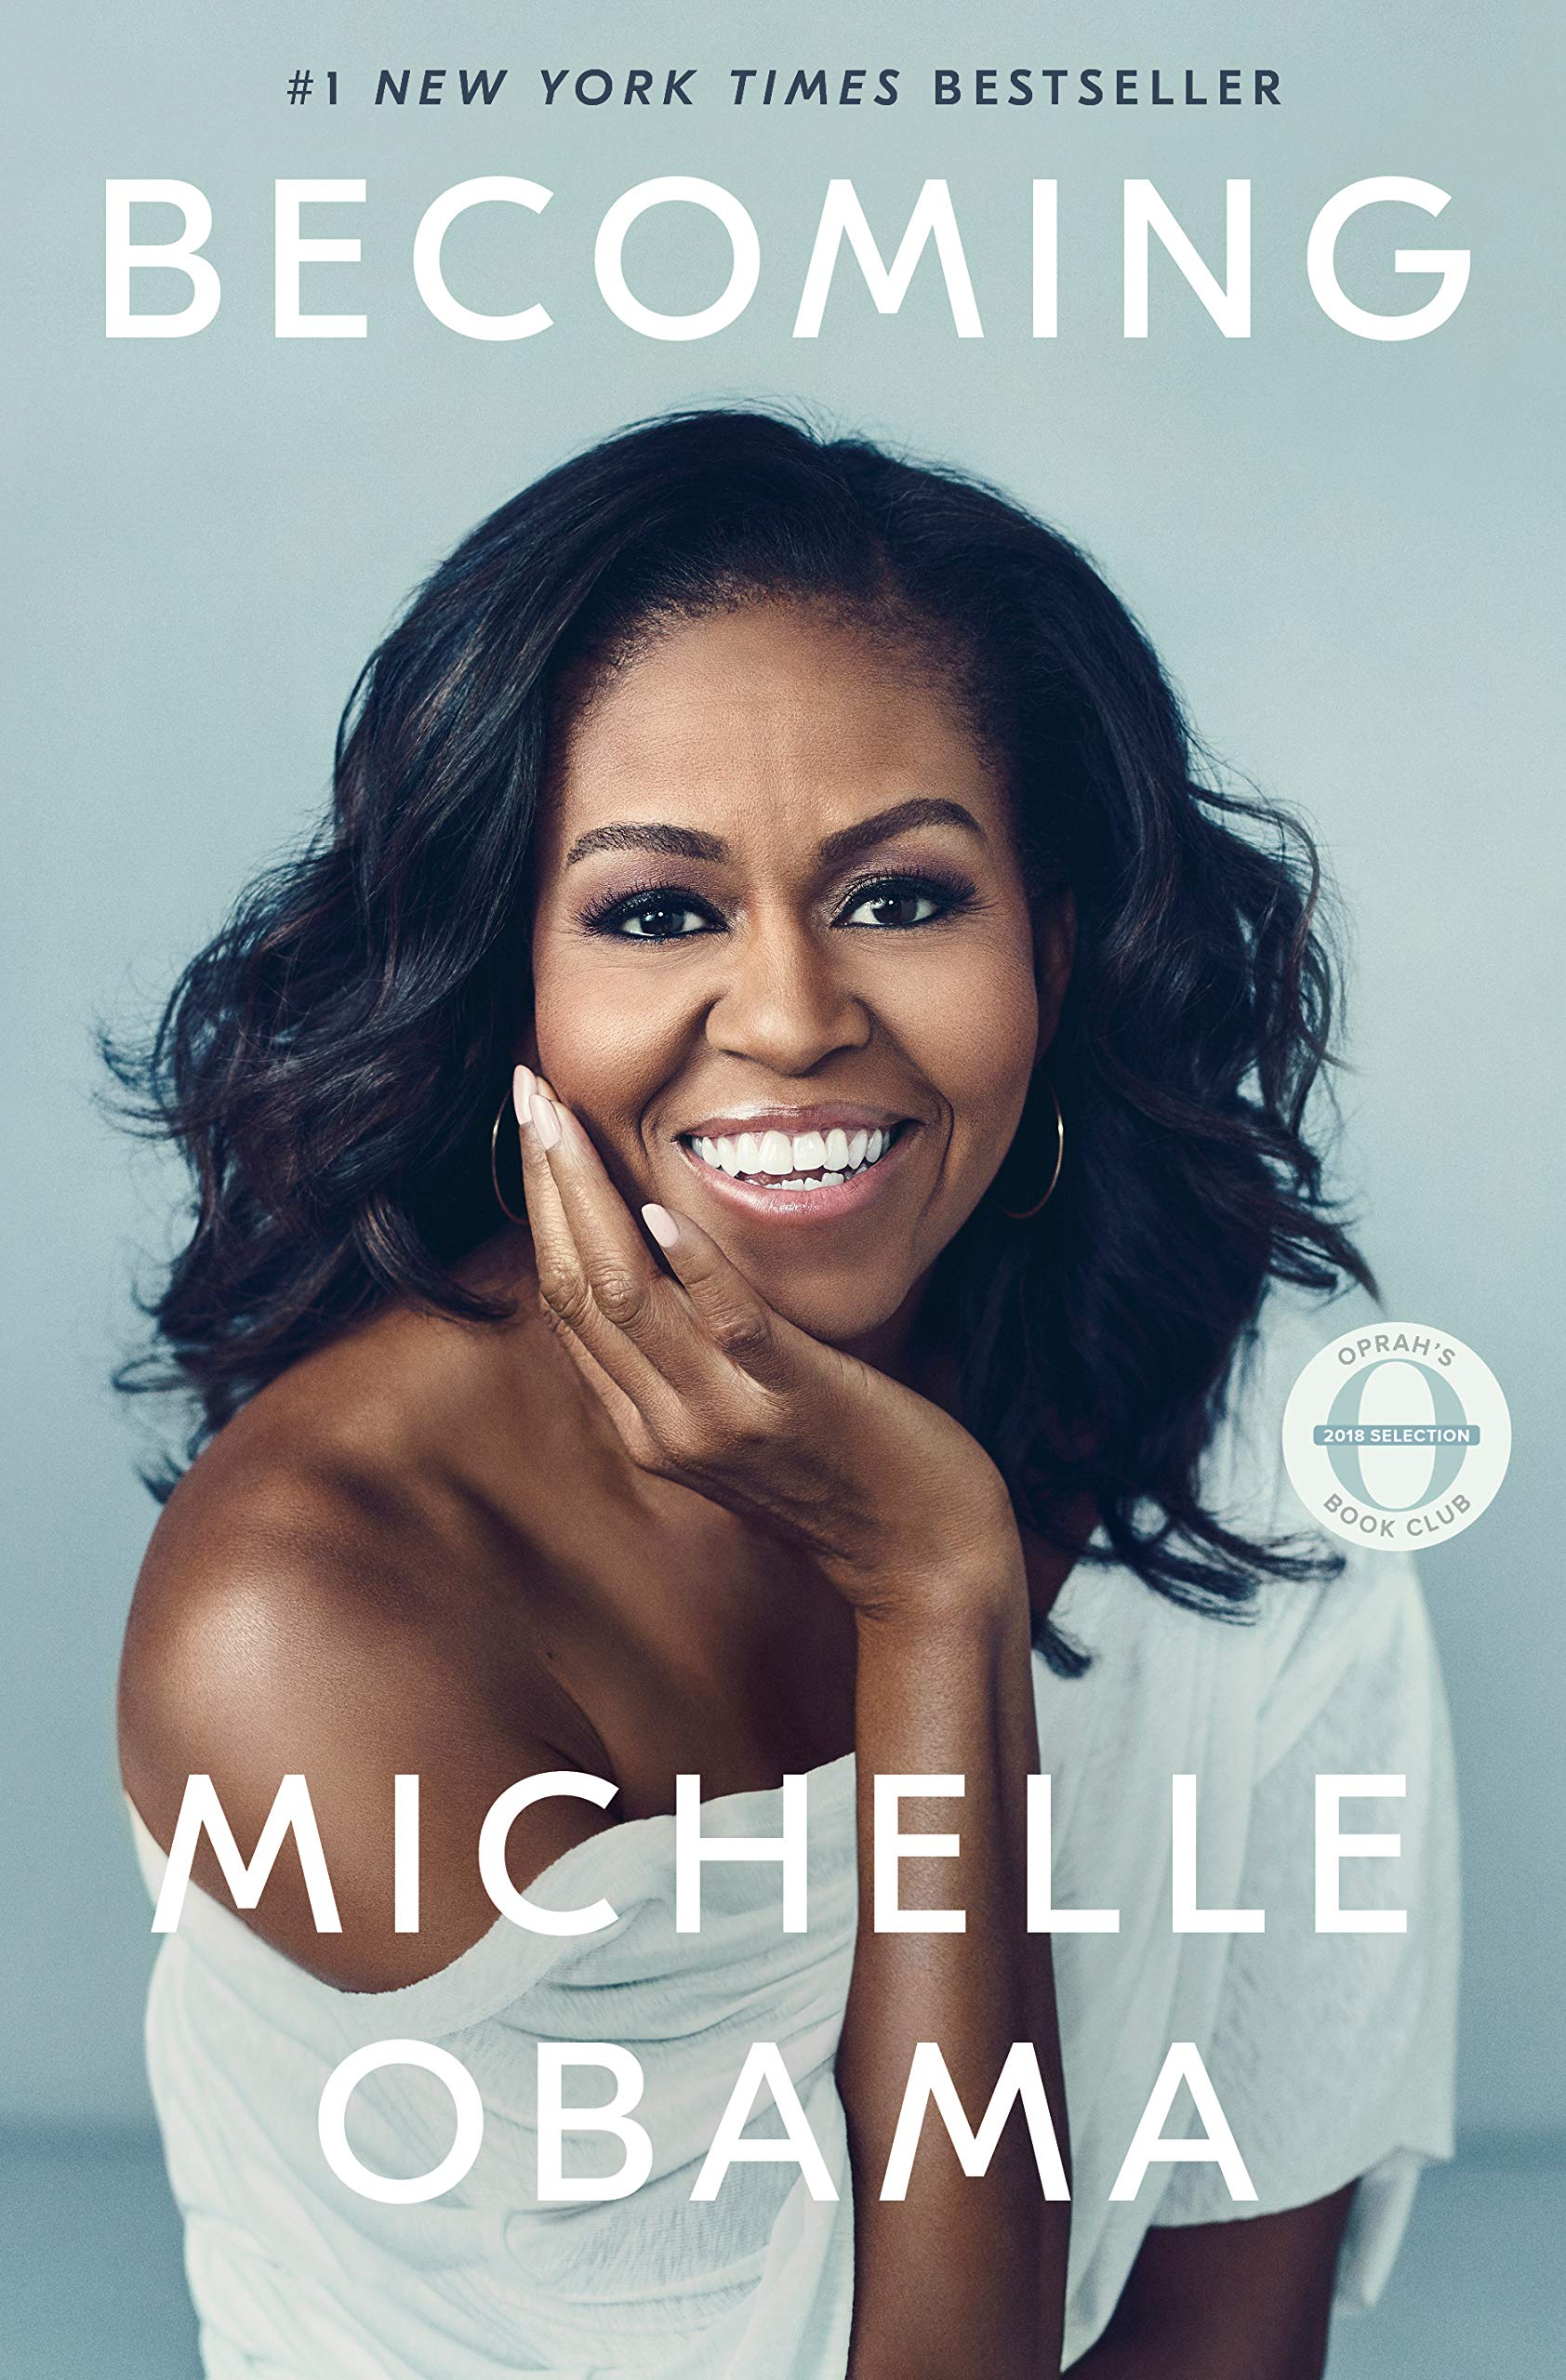 2) Becoming - By Michelle Obama